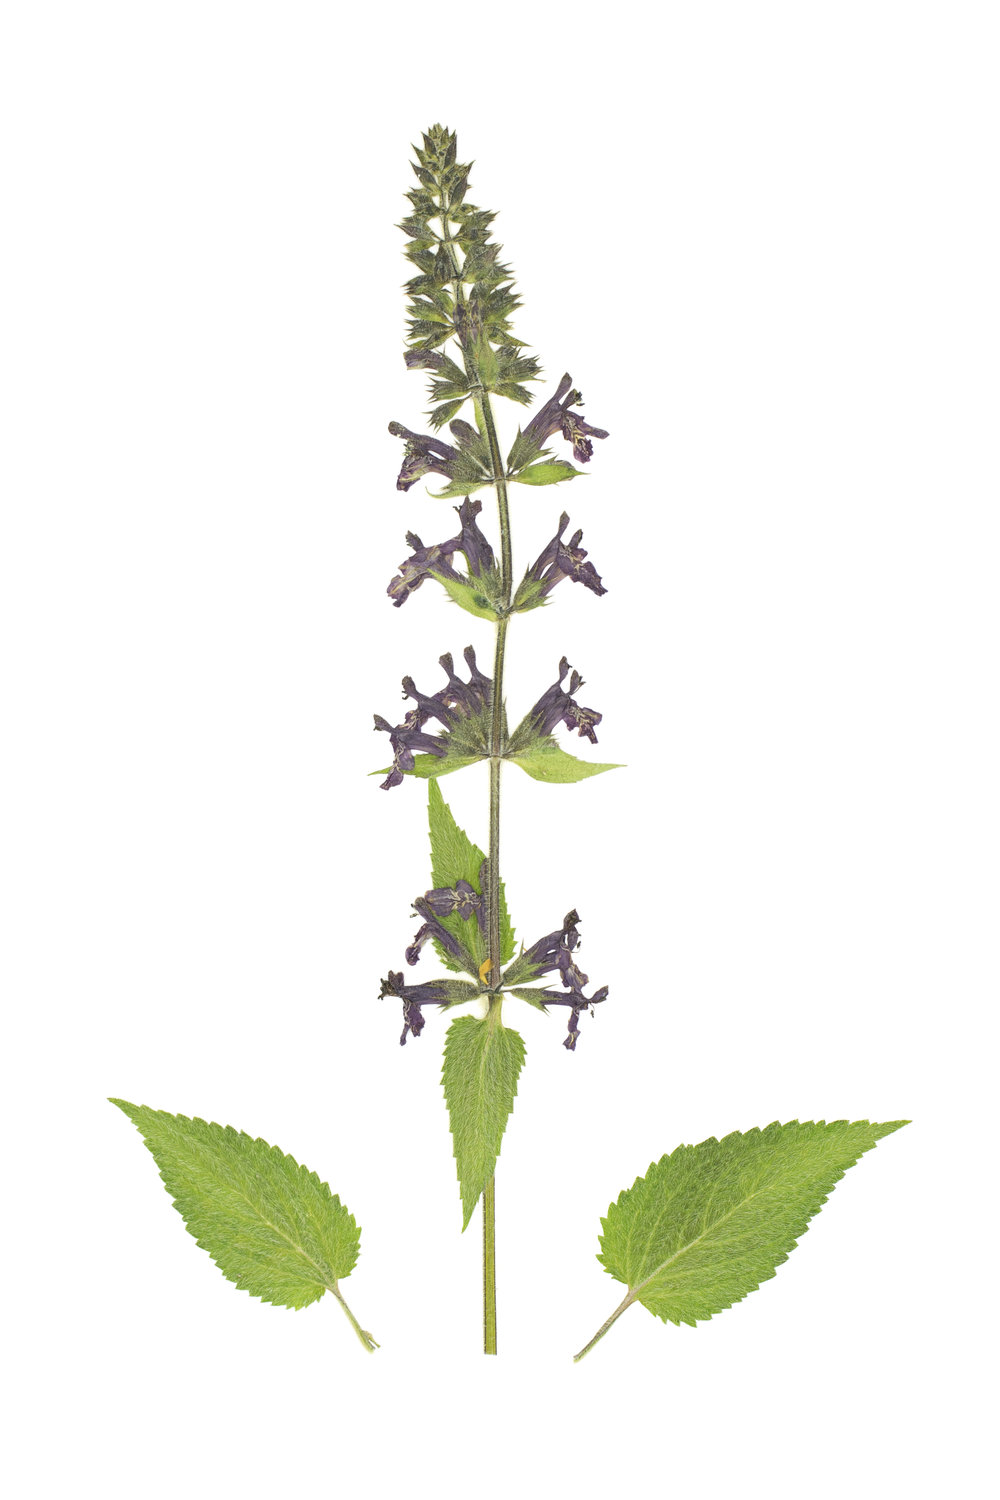 Hedge Woundwort / Stachys sylvatica